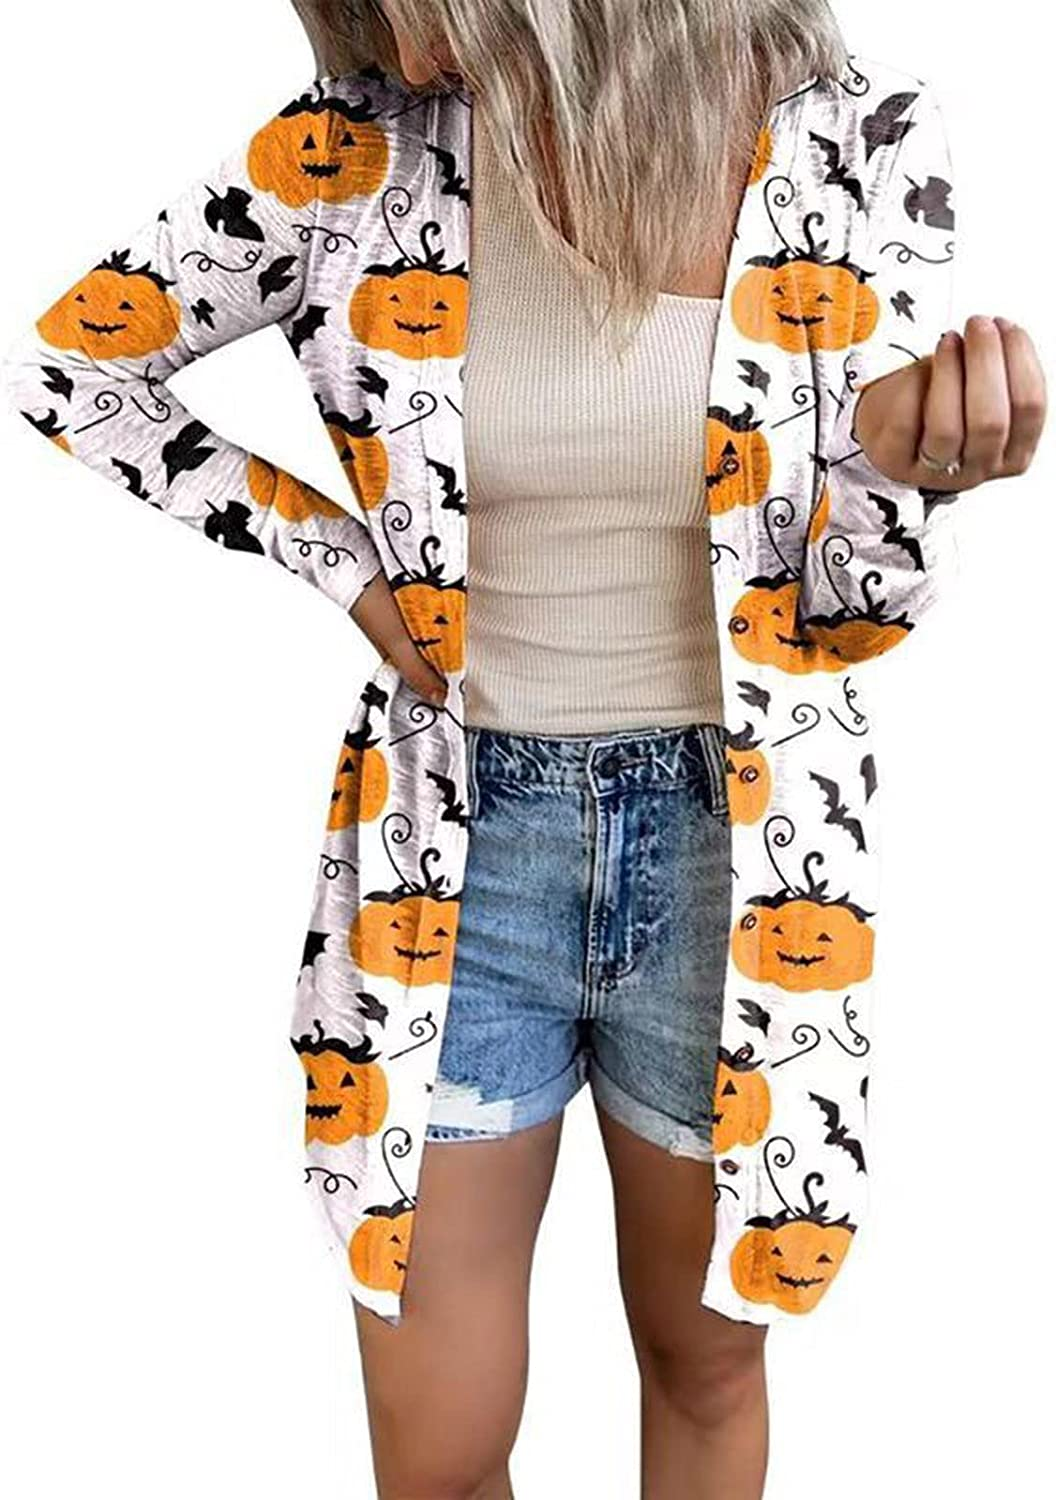 Halloween Coat for Women Fall Casual Tops Open Front Cardigan Pumpkin Graphic Long Sleeve Relaxed Fit Blouse